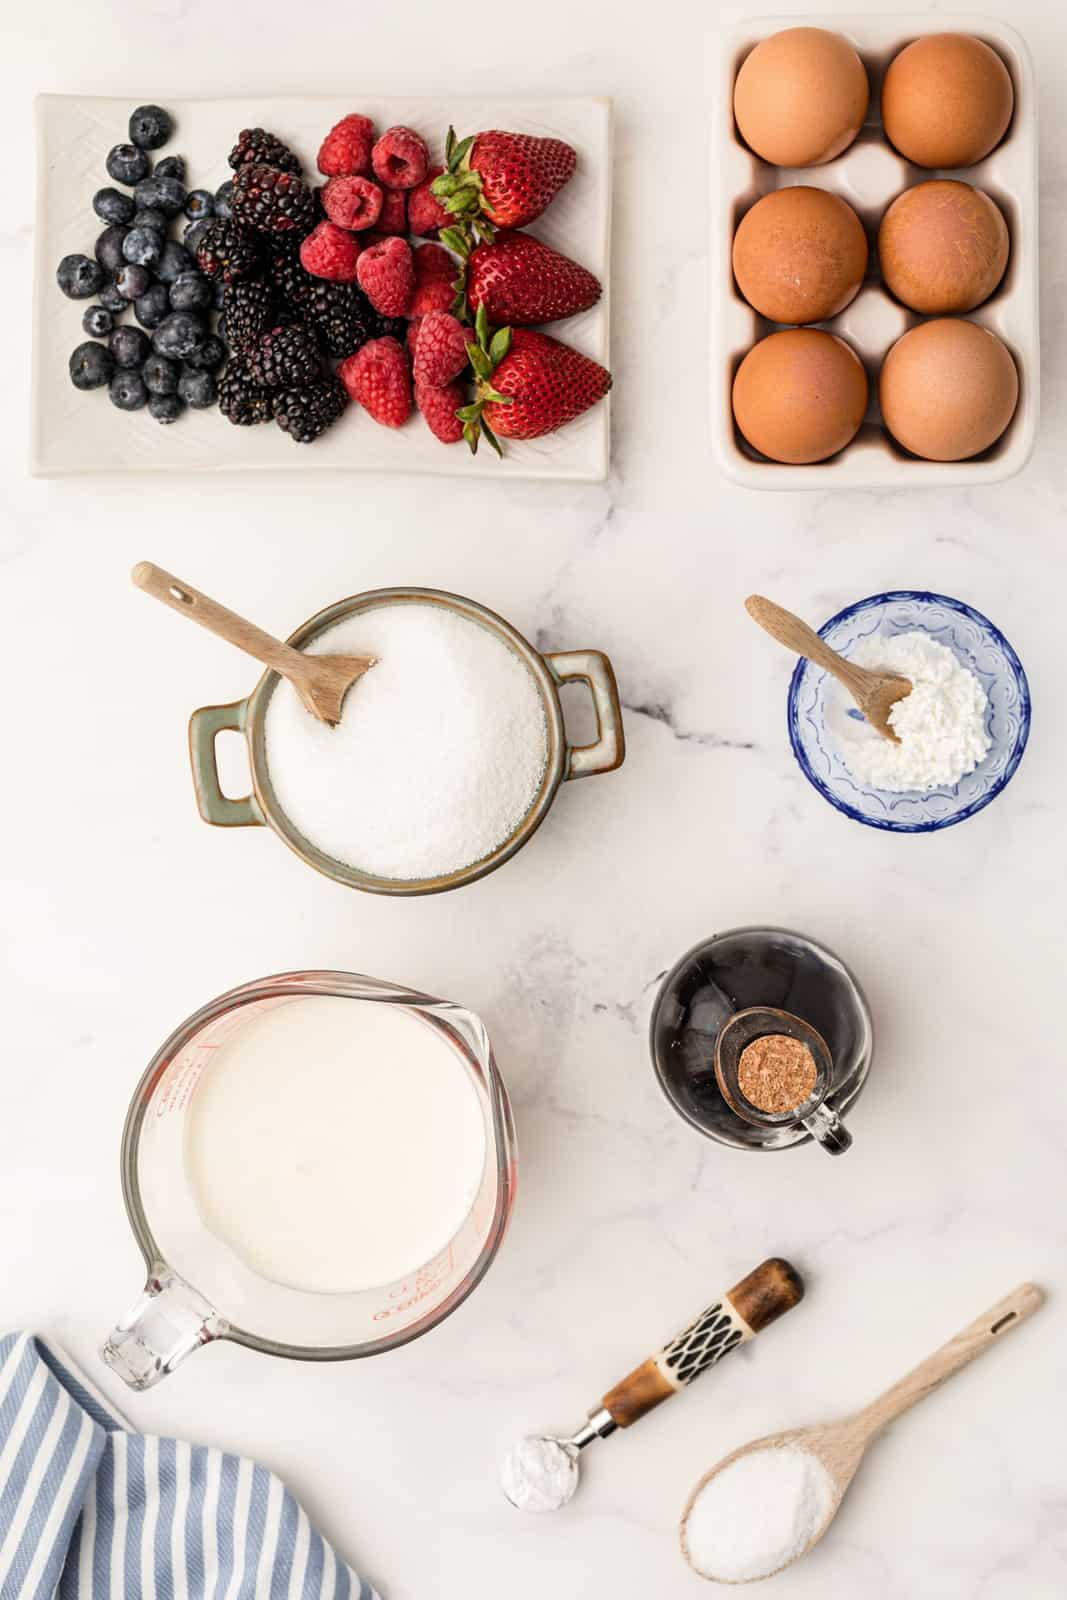 Ingredients needed to make a Pavlova